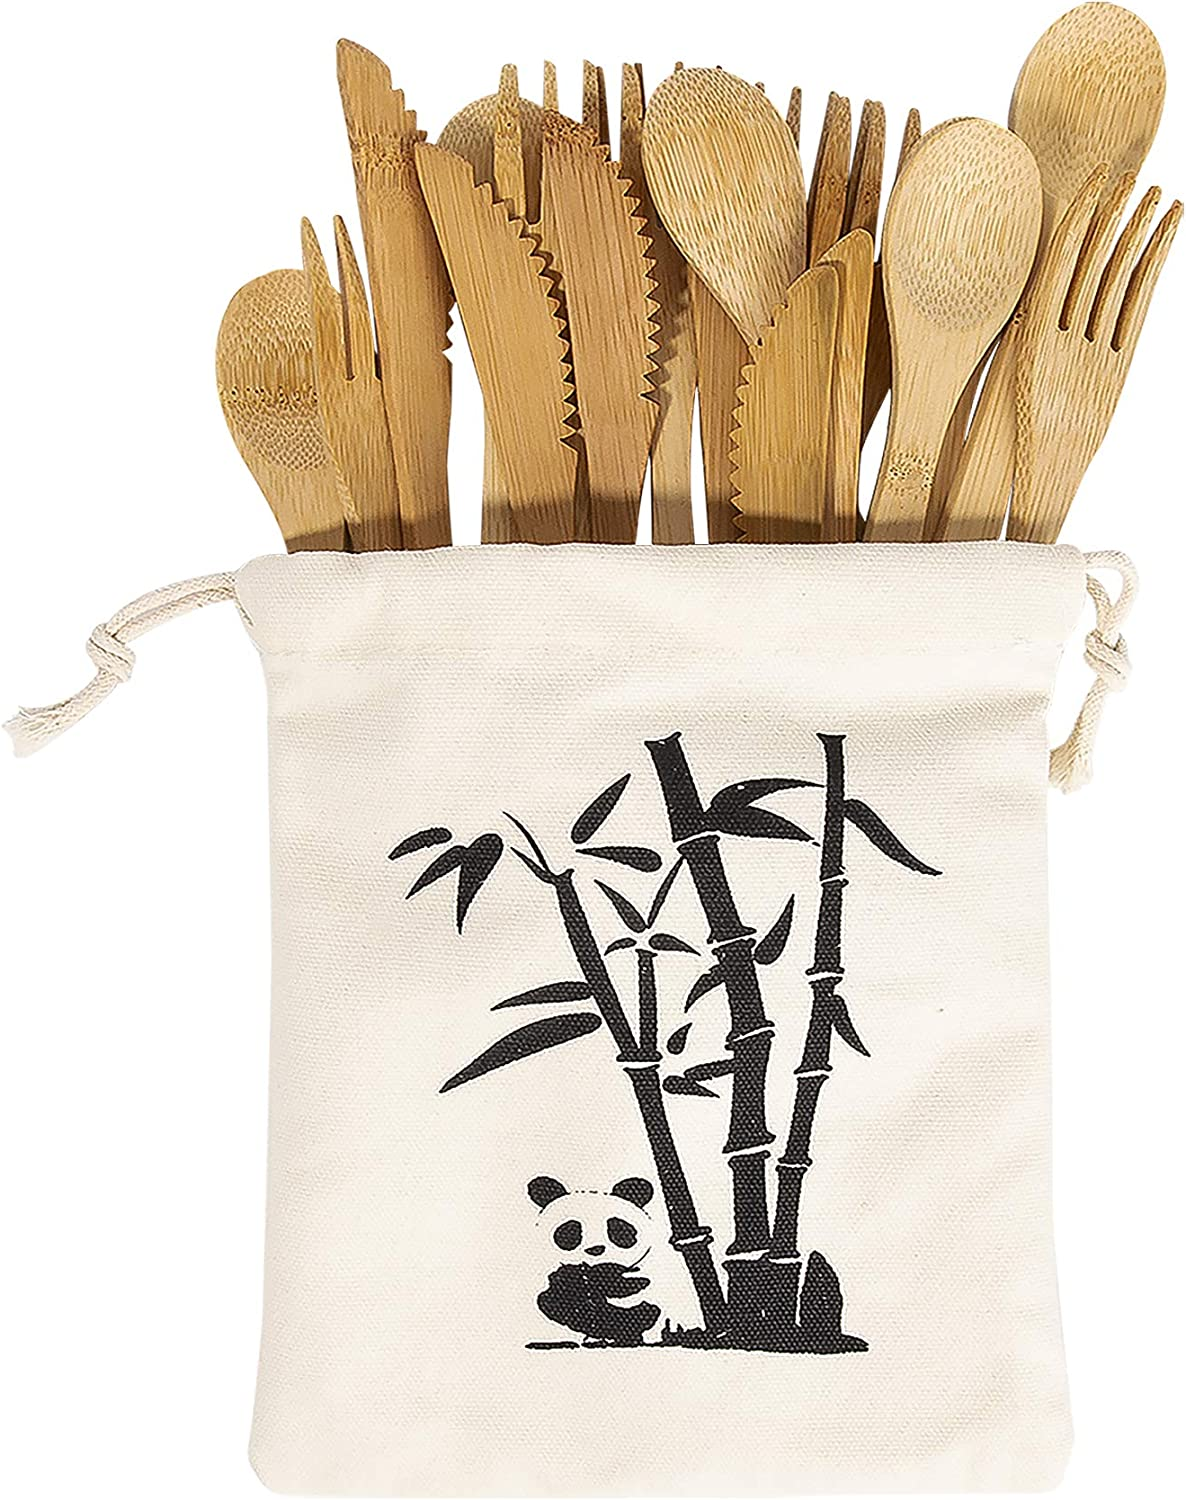 PFCTRJR Bamboo Cutlery Set -30 PCS Reusable Bamboo Utensil Fork Knife Spoon-Bamboo Flatware Sets for Camping, Travel, Picnic, Office, School,Bamboo Silverware Set with Pouch Bag